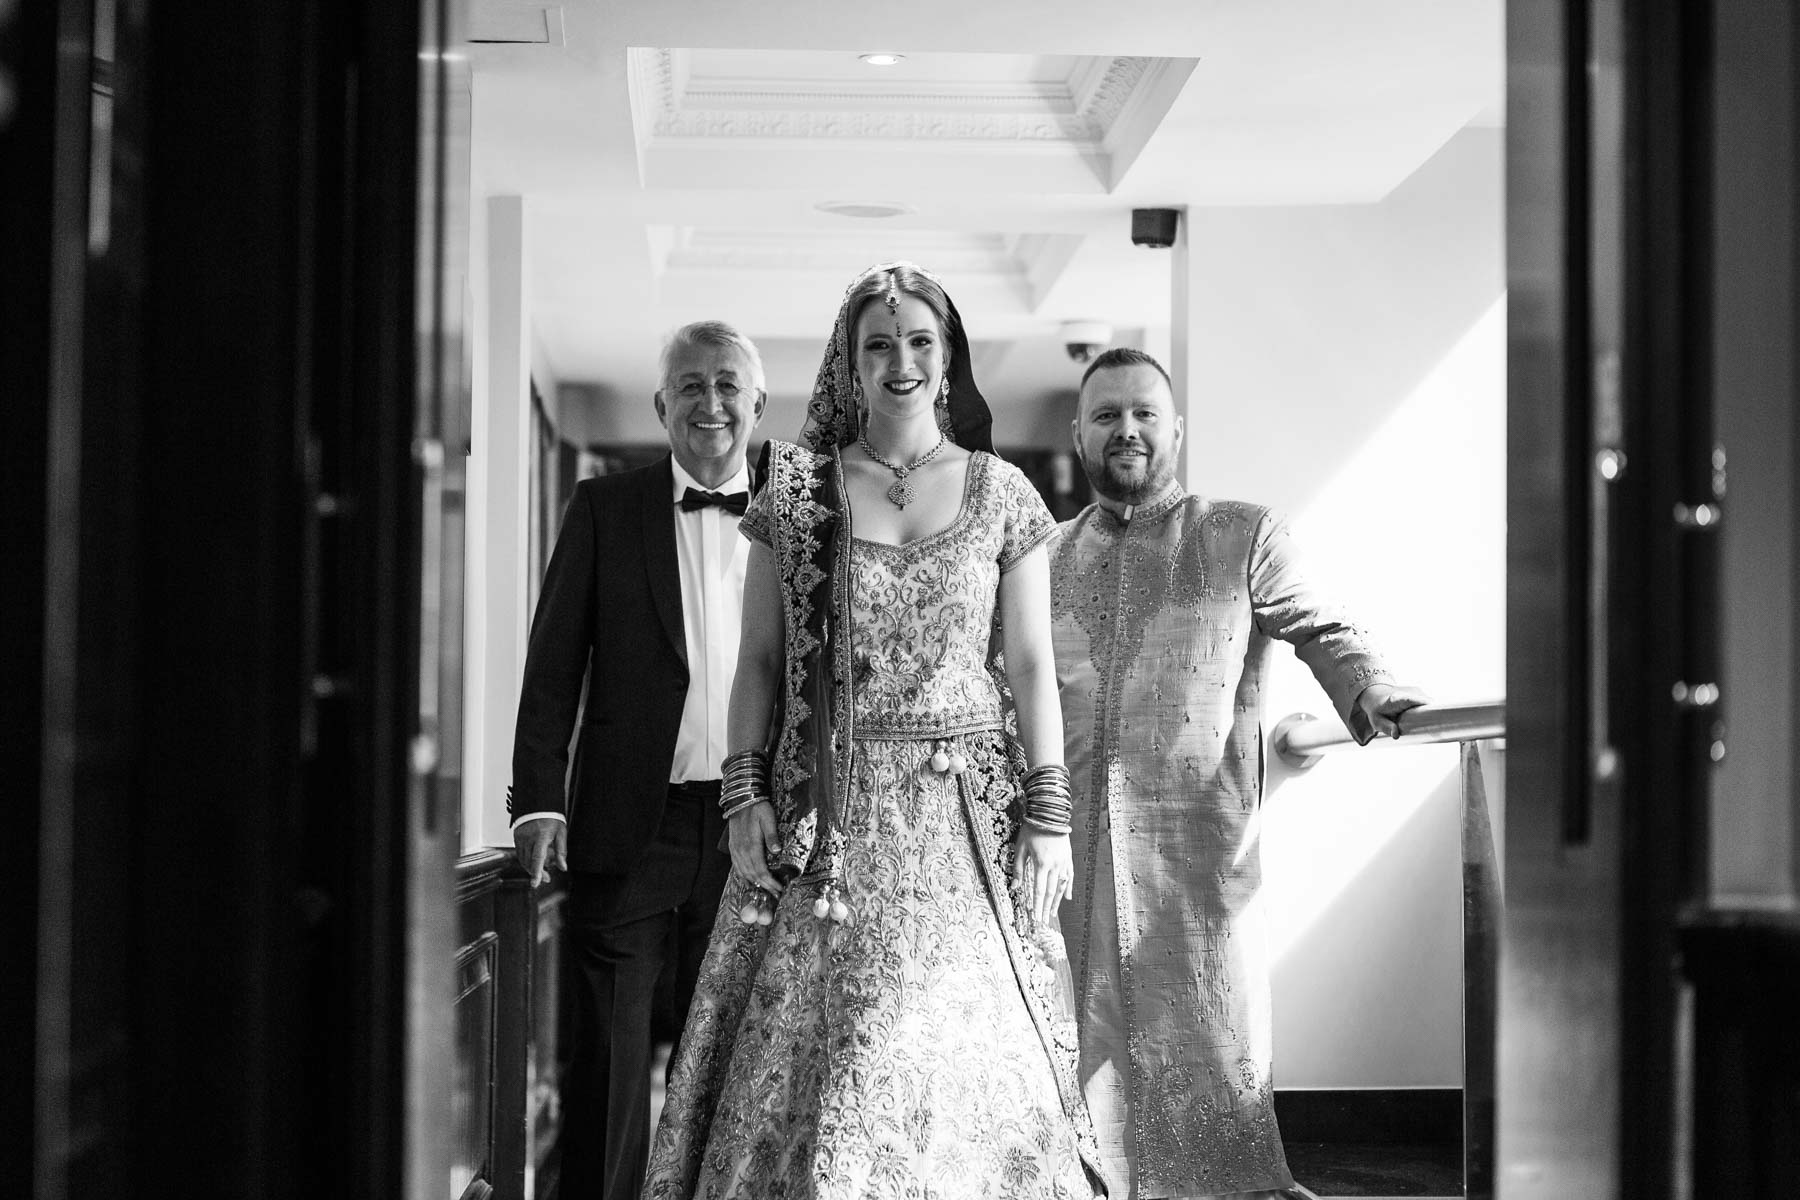 Natural wedding photographer London, Raddison Blu Edwardian Heathrow